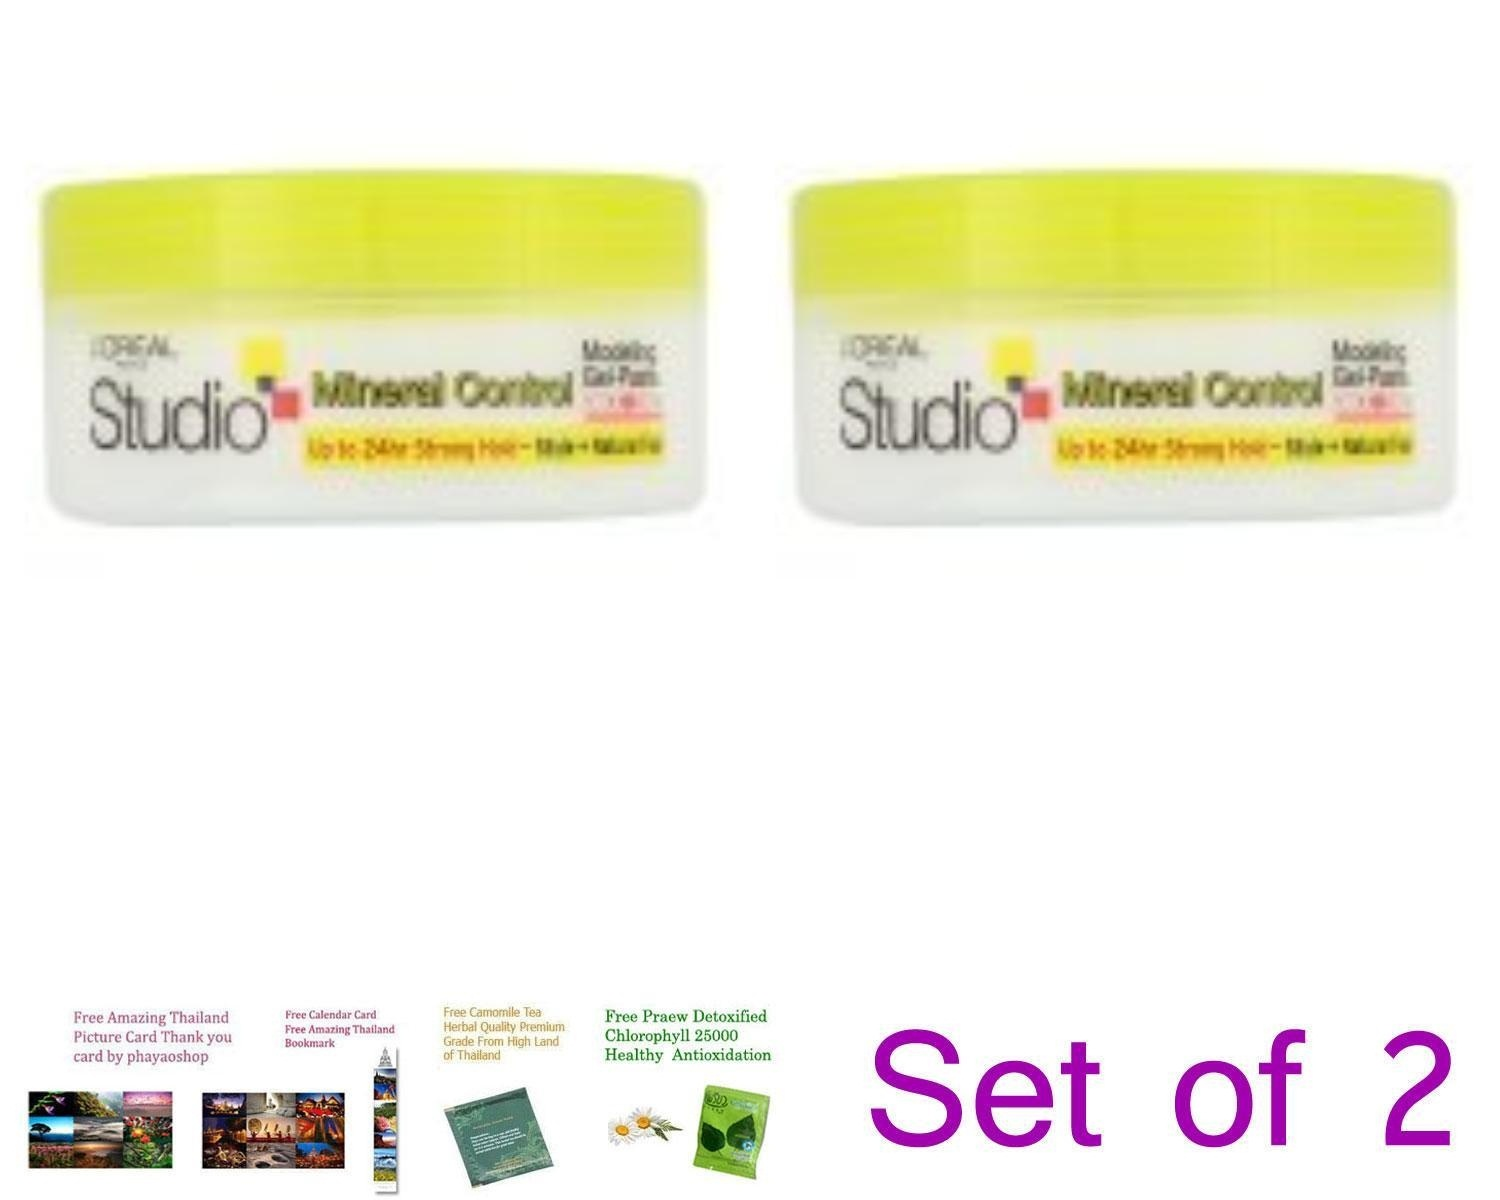 Http List Item 2 Packs Of Loreal Cleaning Eye And Listerine Multi Protect Zero 250ml Free 80ml 452908580g 0 W St G